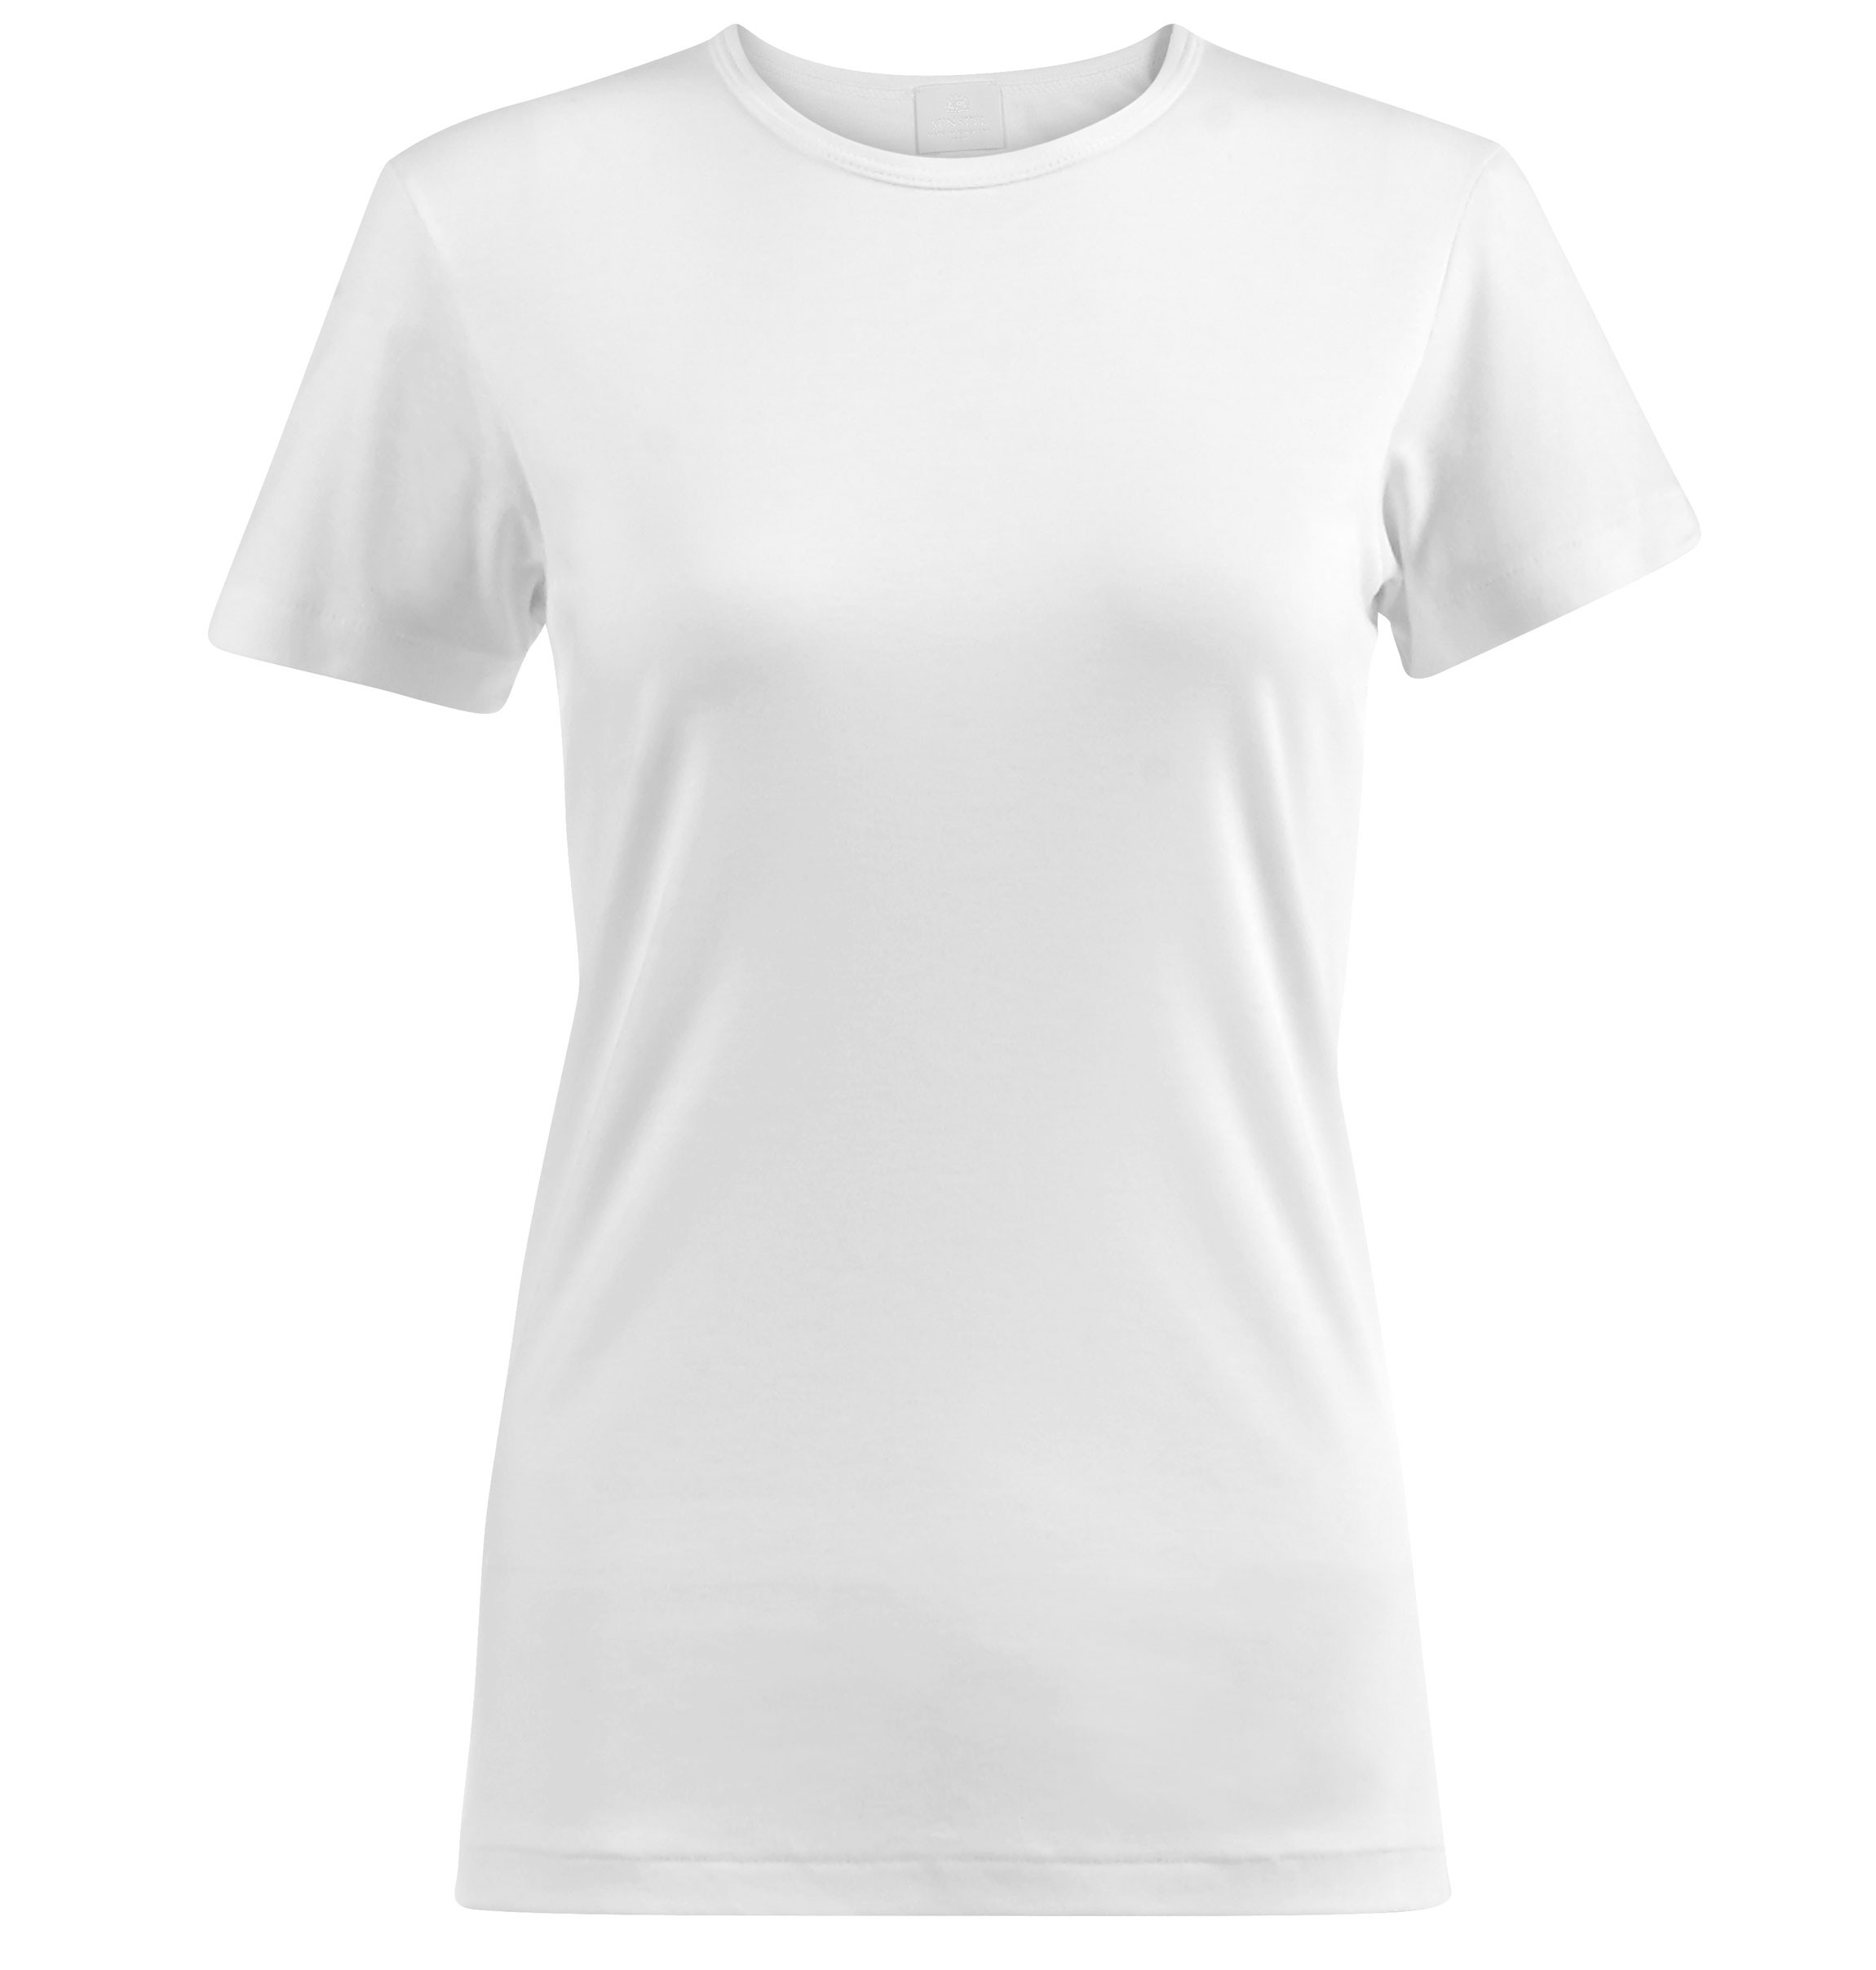 womens white shirt womenu0027s sea island cotton t-shirt in white | sunspel OUXXUDO